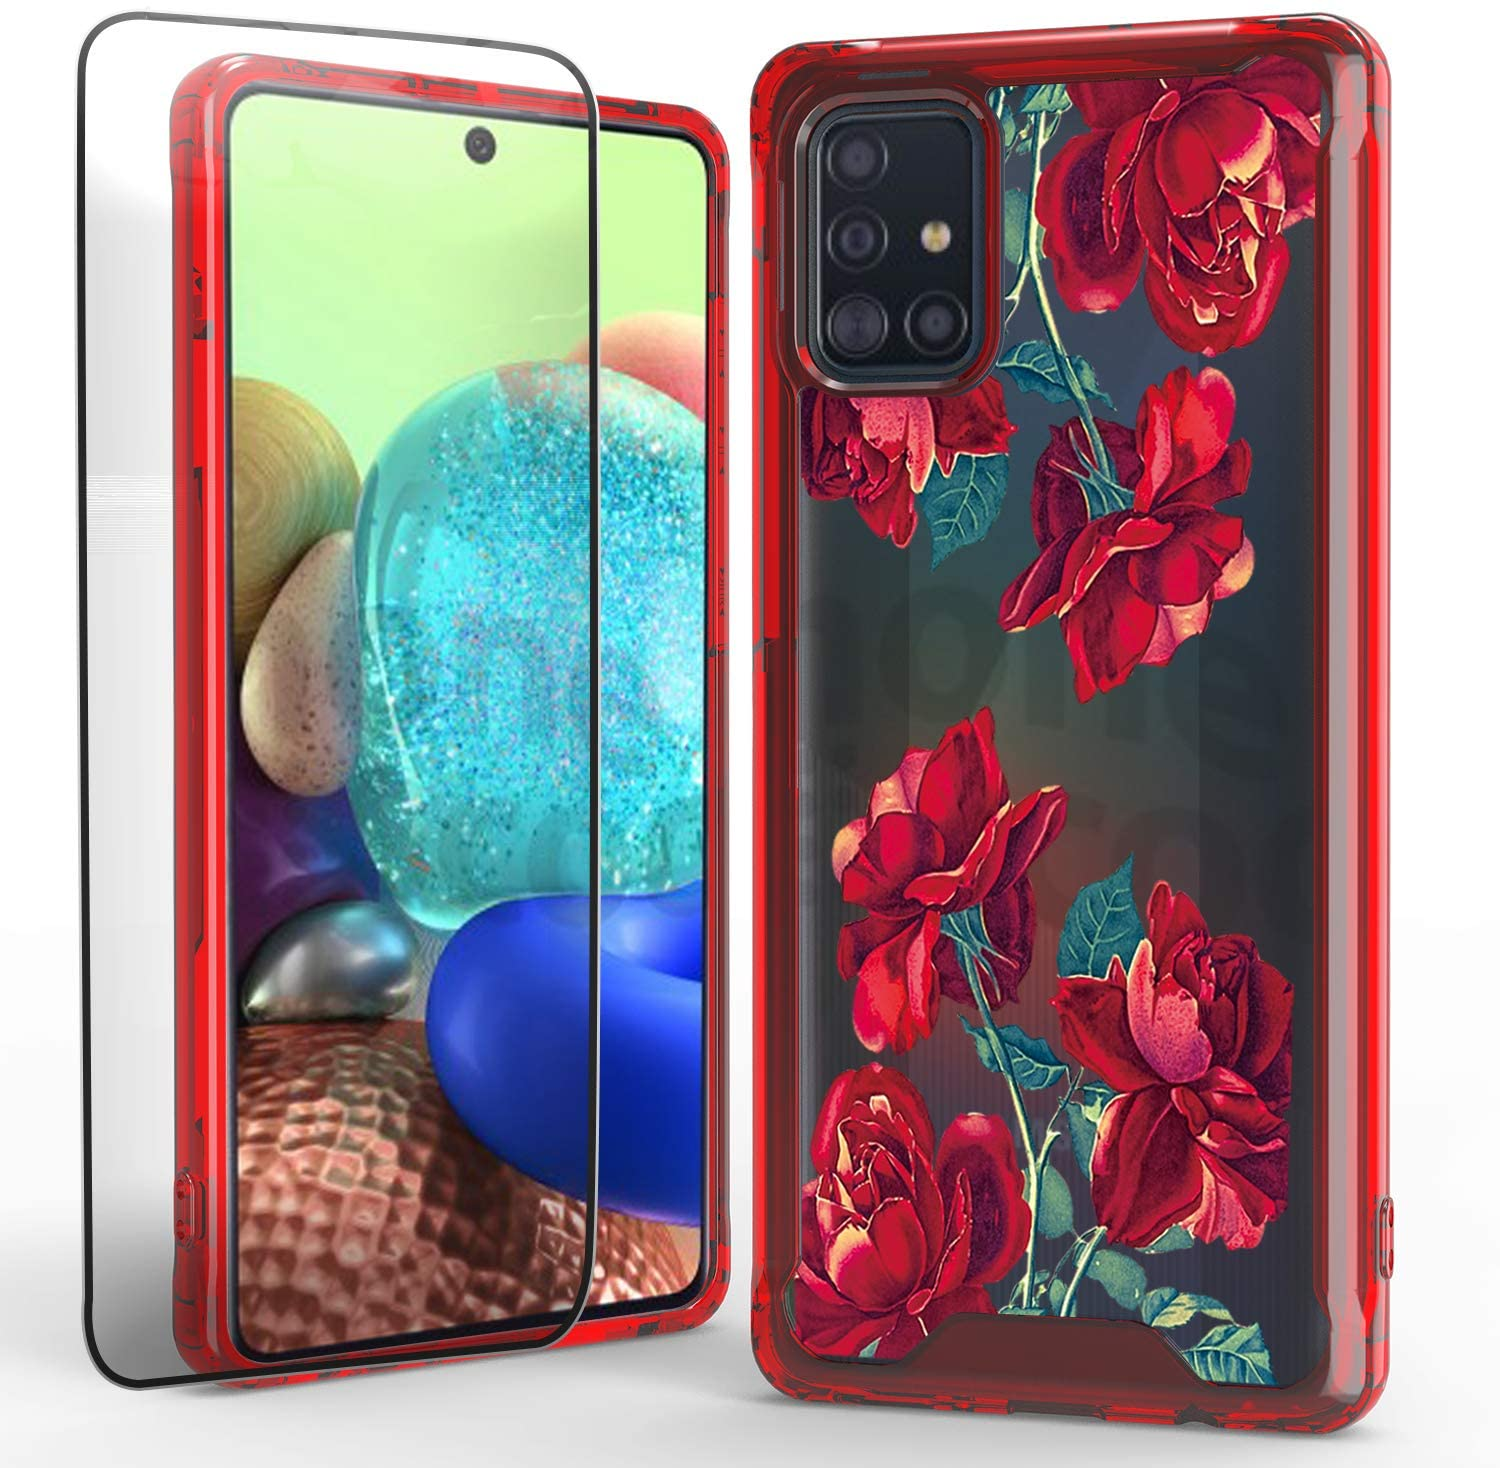 WZOKA Phone Case for Samsung Galaxy A71, Shockproof Aniti-Scratch Cover with Galaxy A71 Tempered Glass Screen Protector, Beautiful Design (Red Rose)